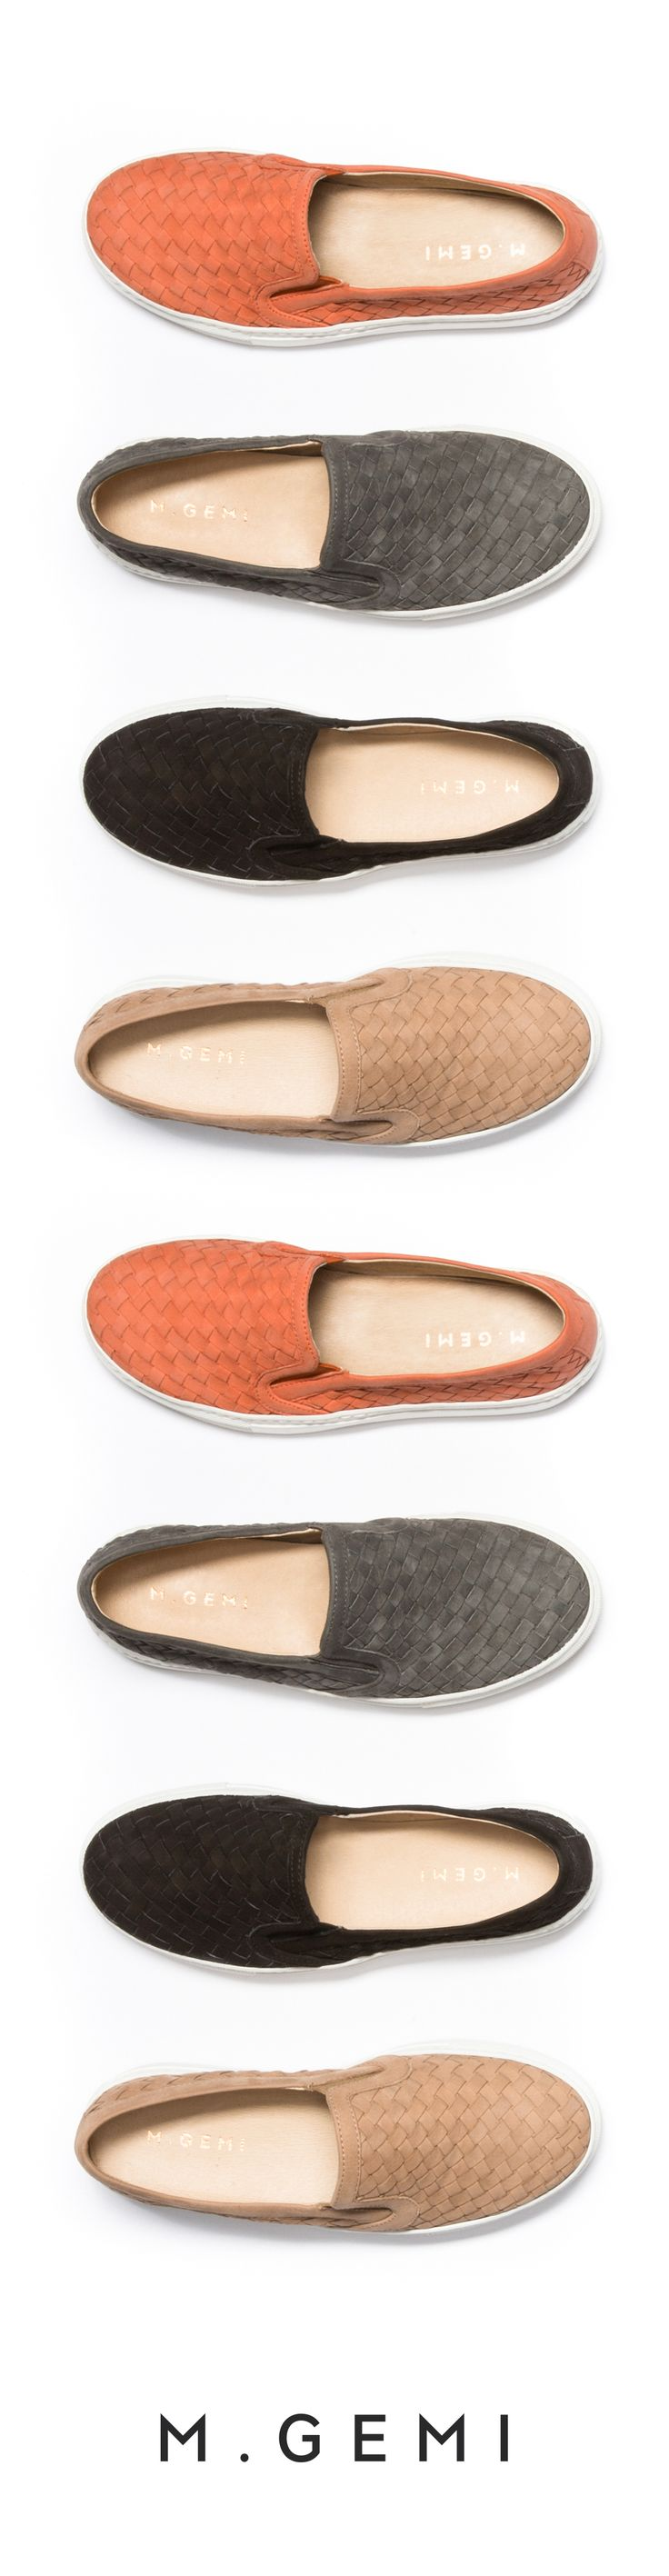 Handcrafted shoes. Fresh from Italy each week. Direct to you. Explore M.Gemi.